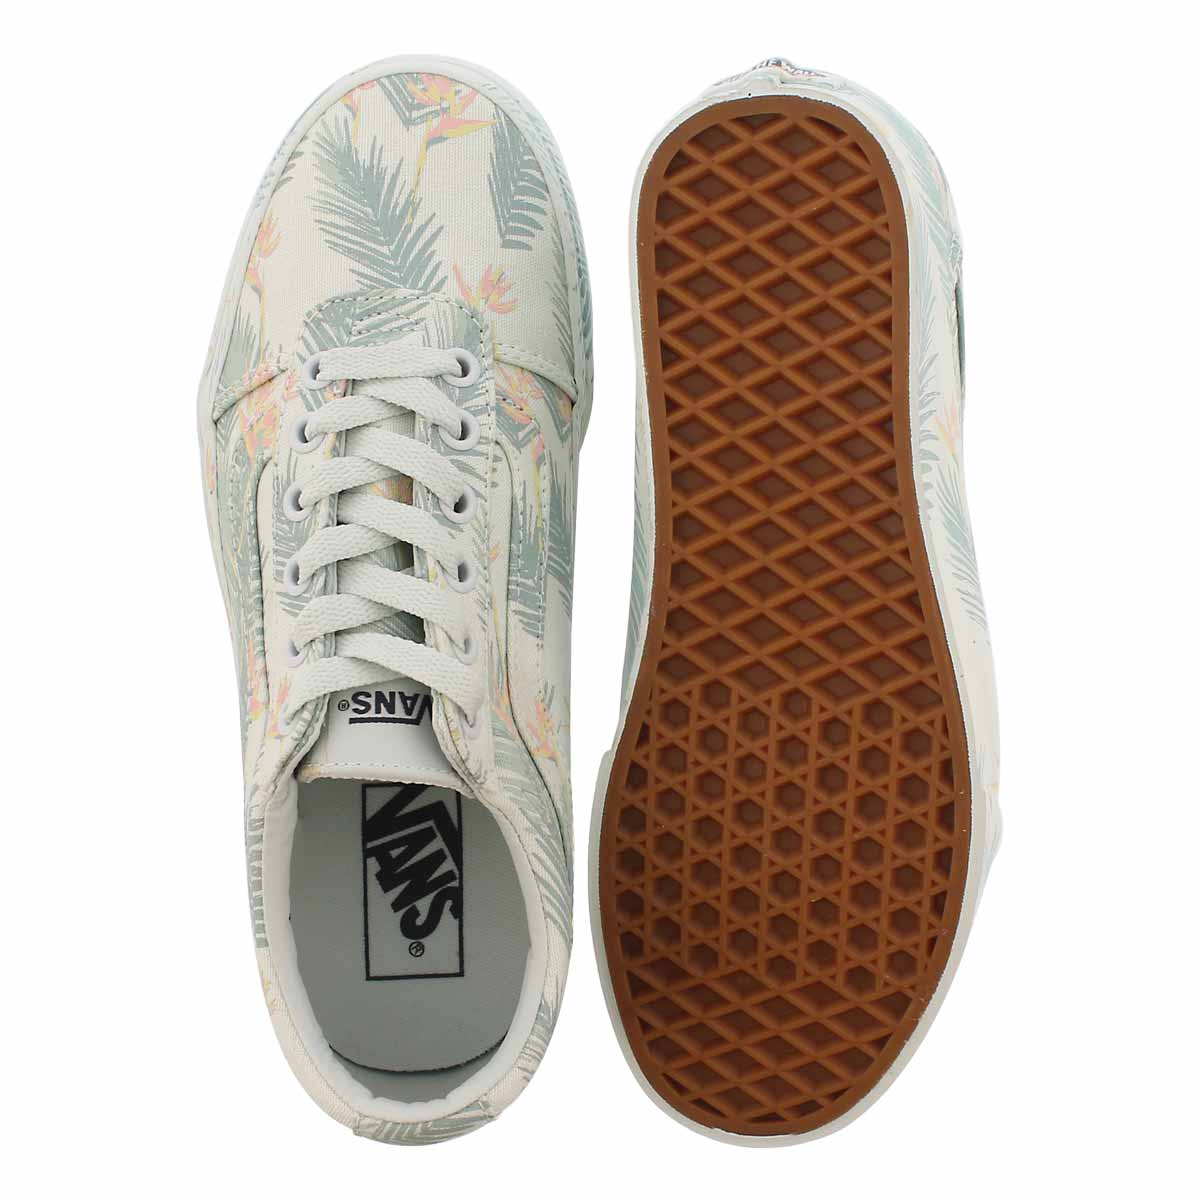 Lds Ward tropical green lace up sneaker